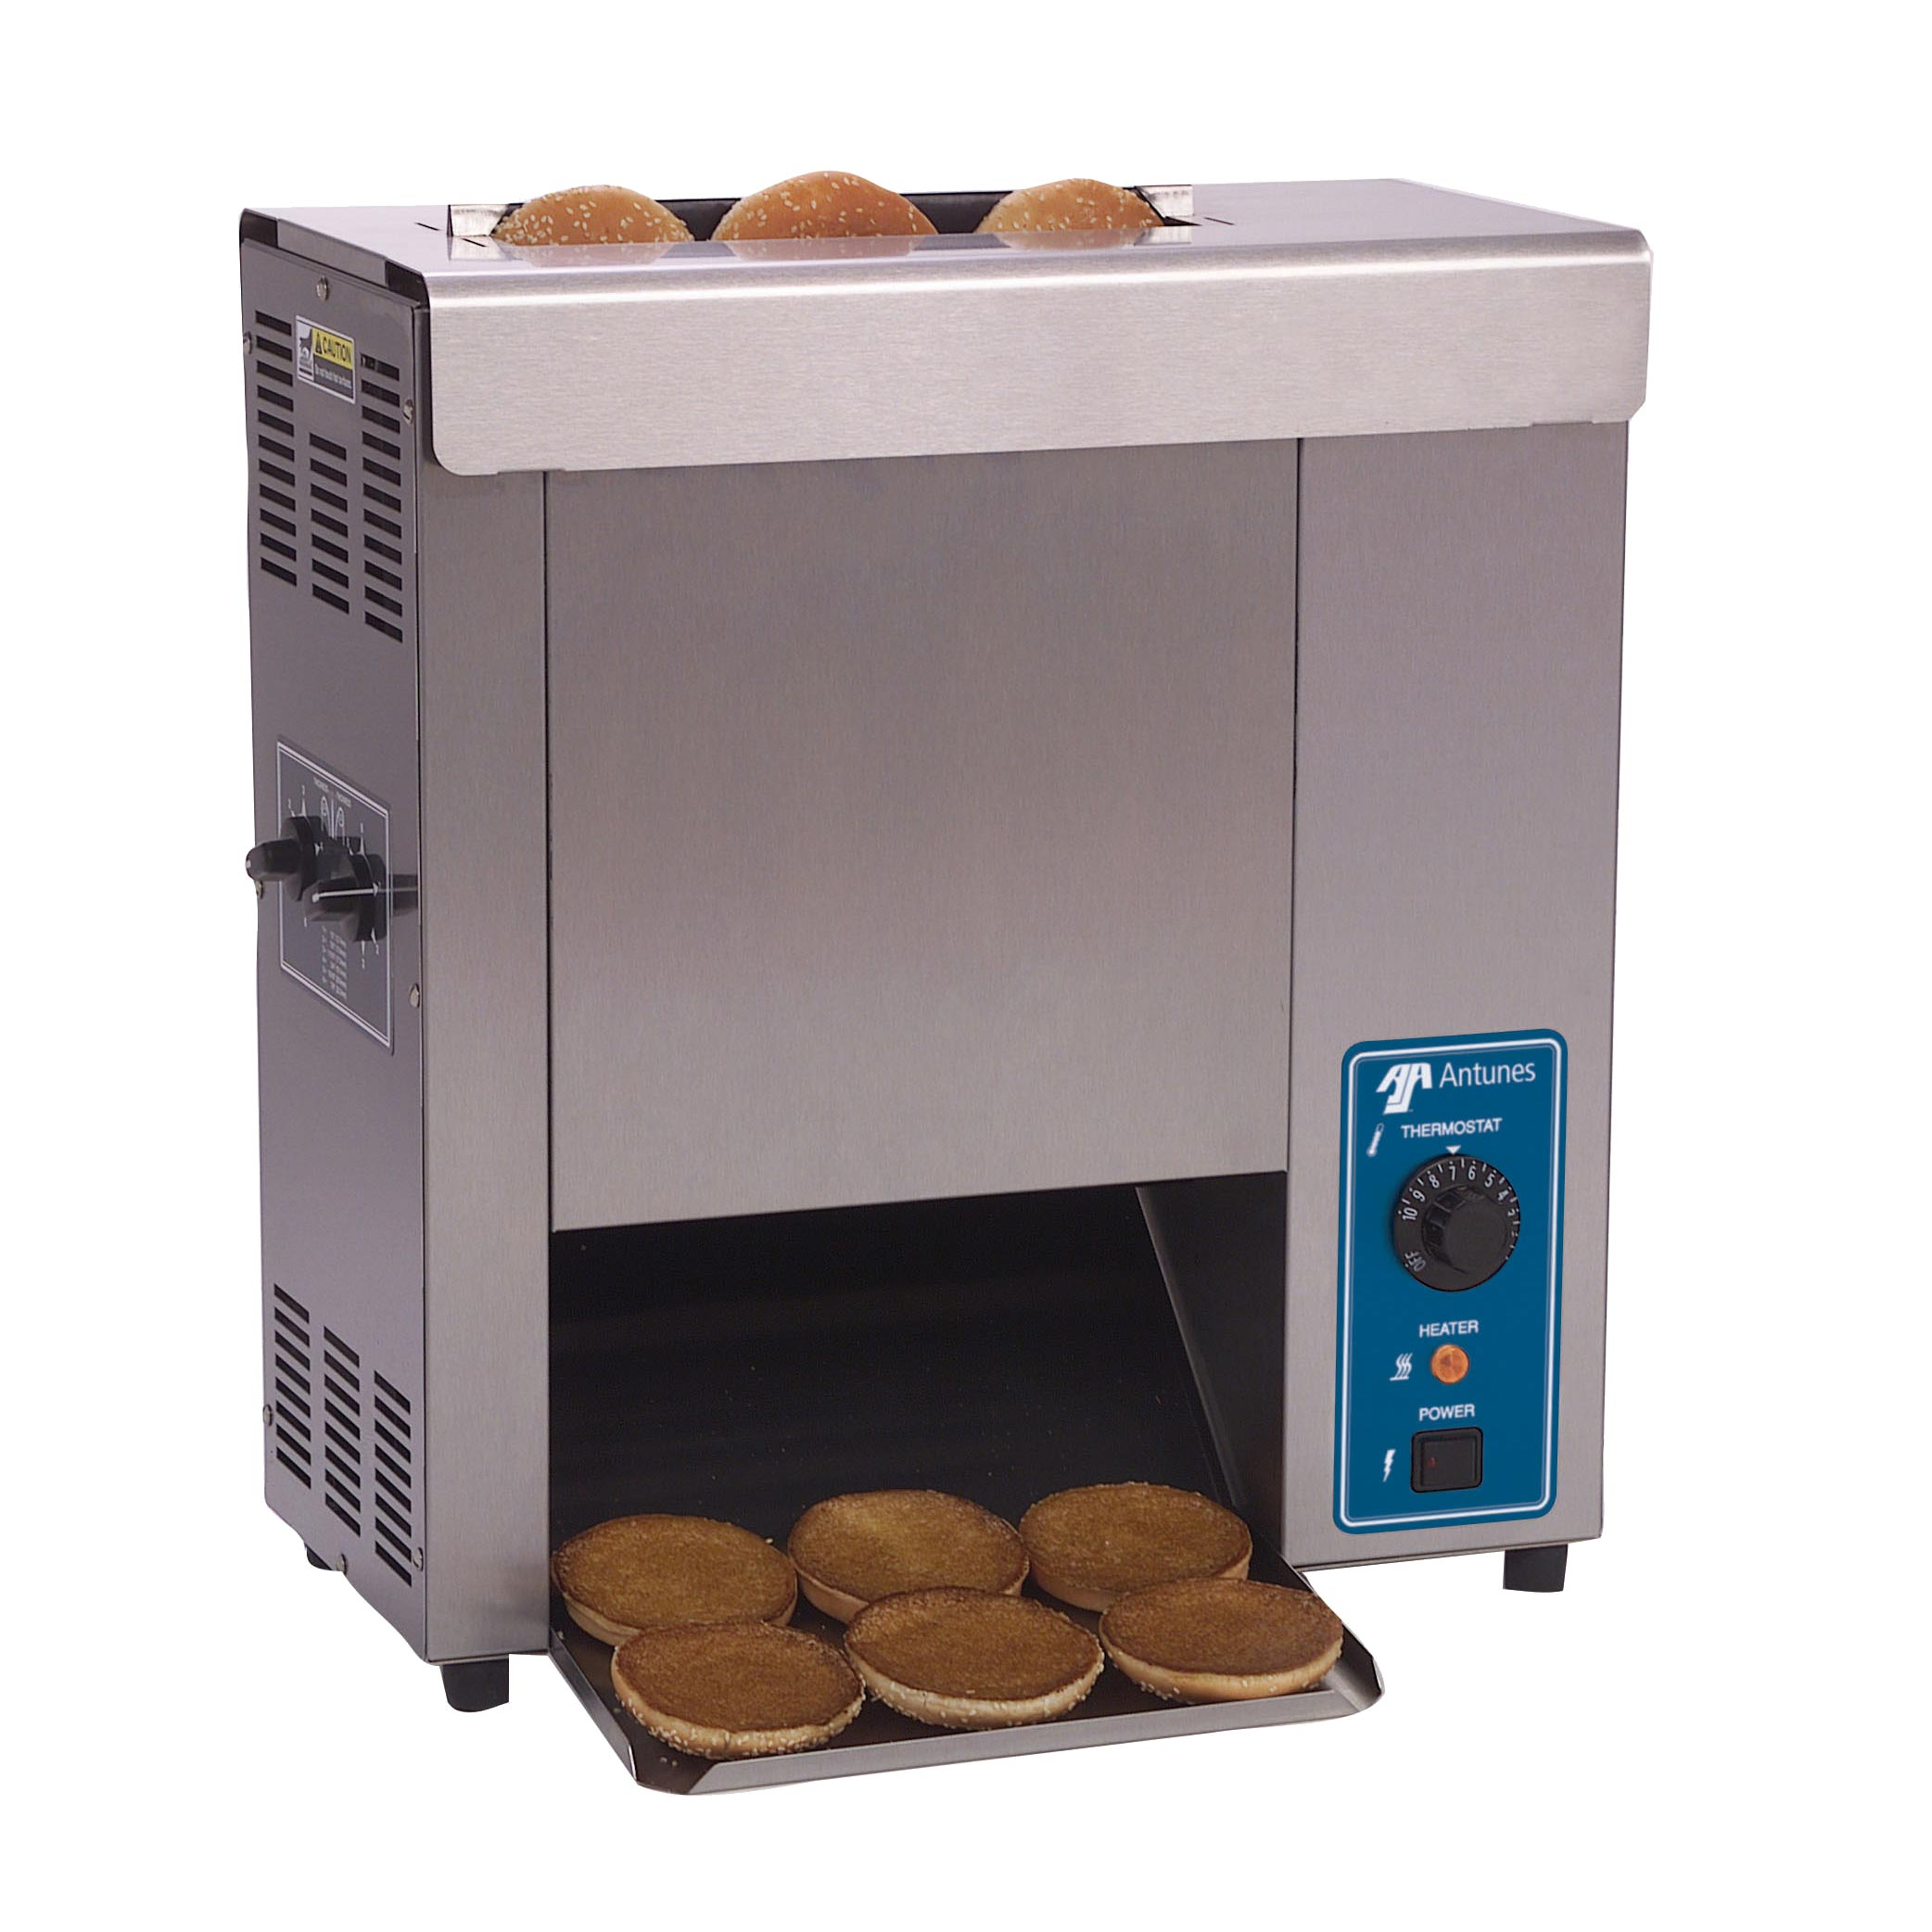 VCT-25-9200620 Antunes toaster, contact grill